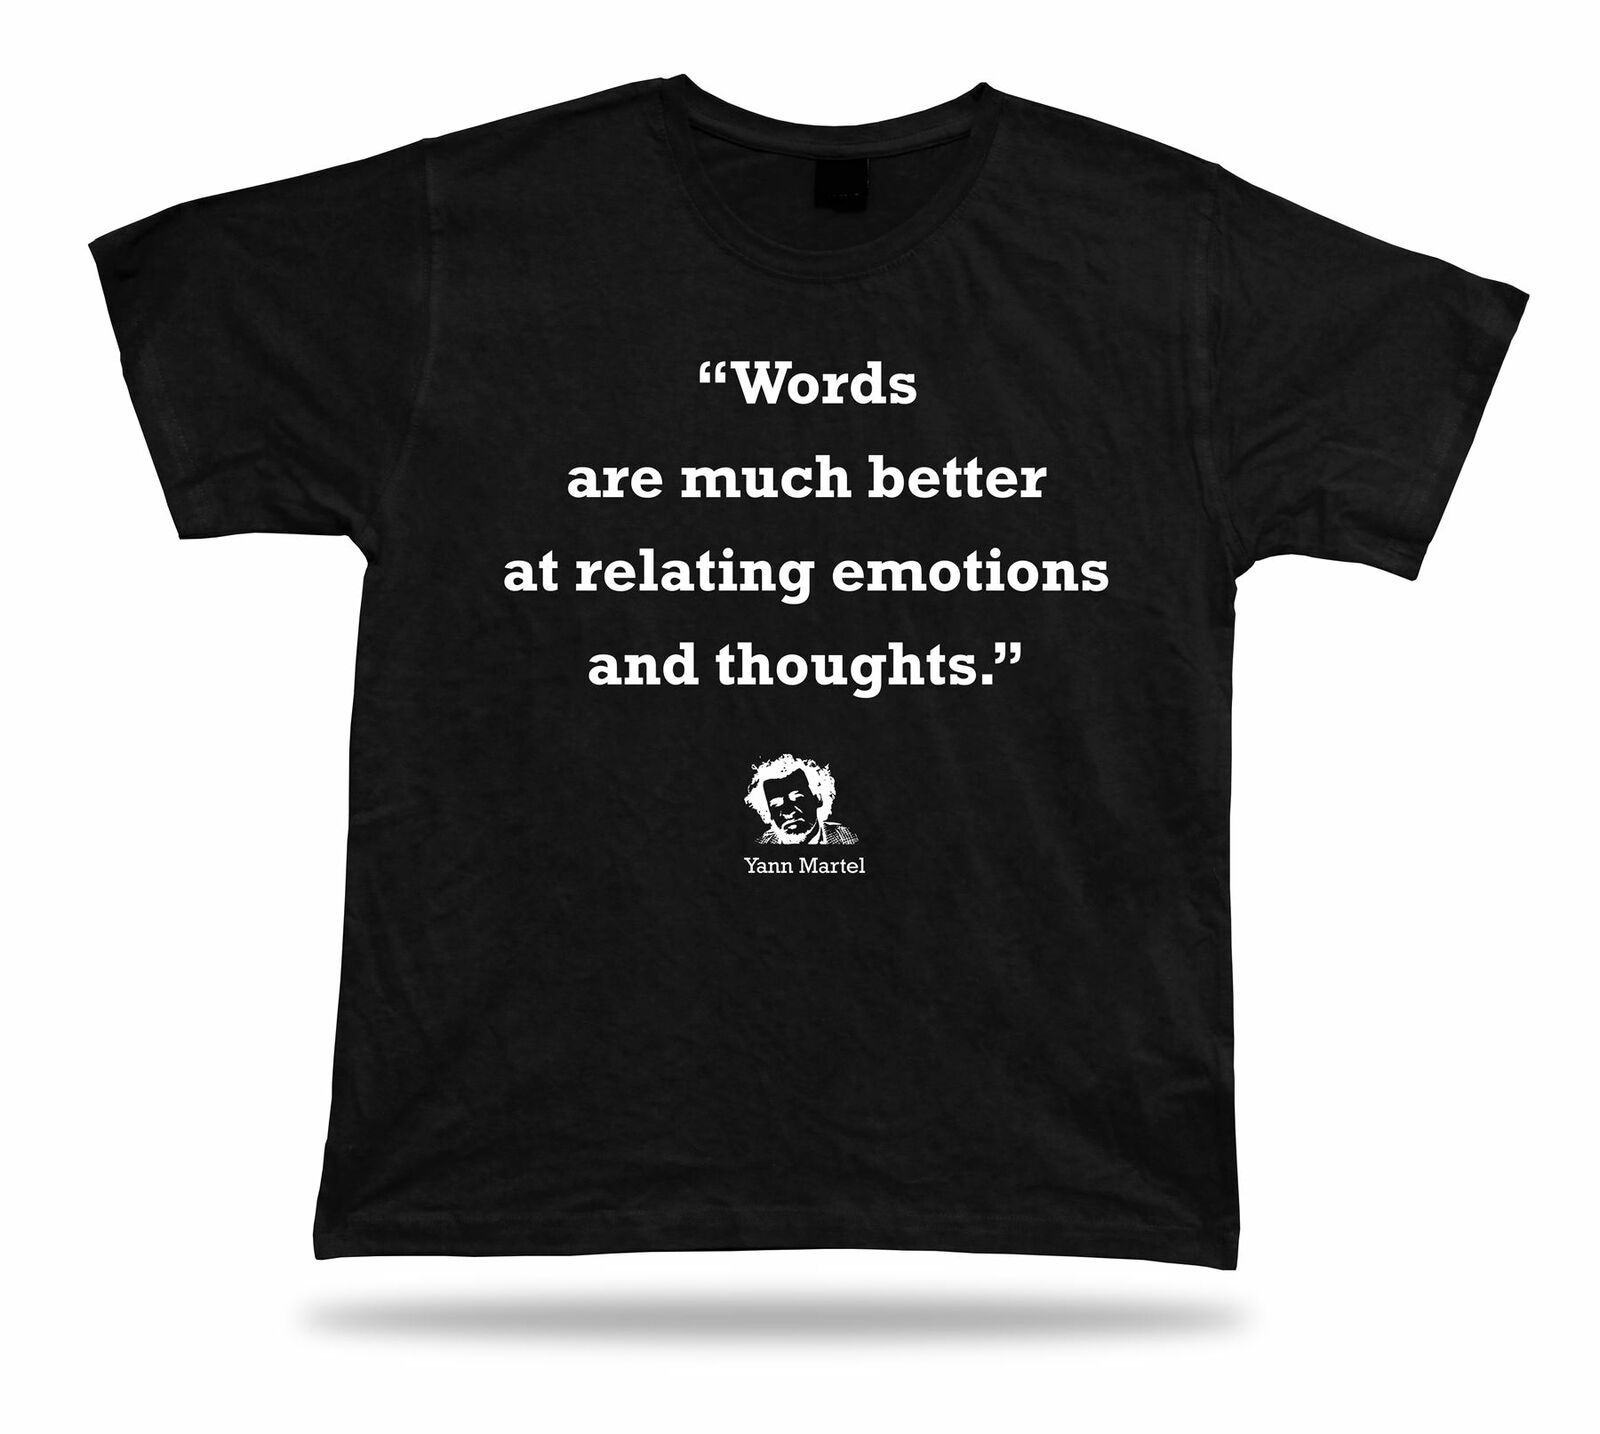 Primary image for Yann Martel For Sale BEST TEE Quote APPARLE Special Birthday BBF SHIRT Gift Idea